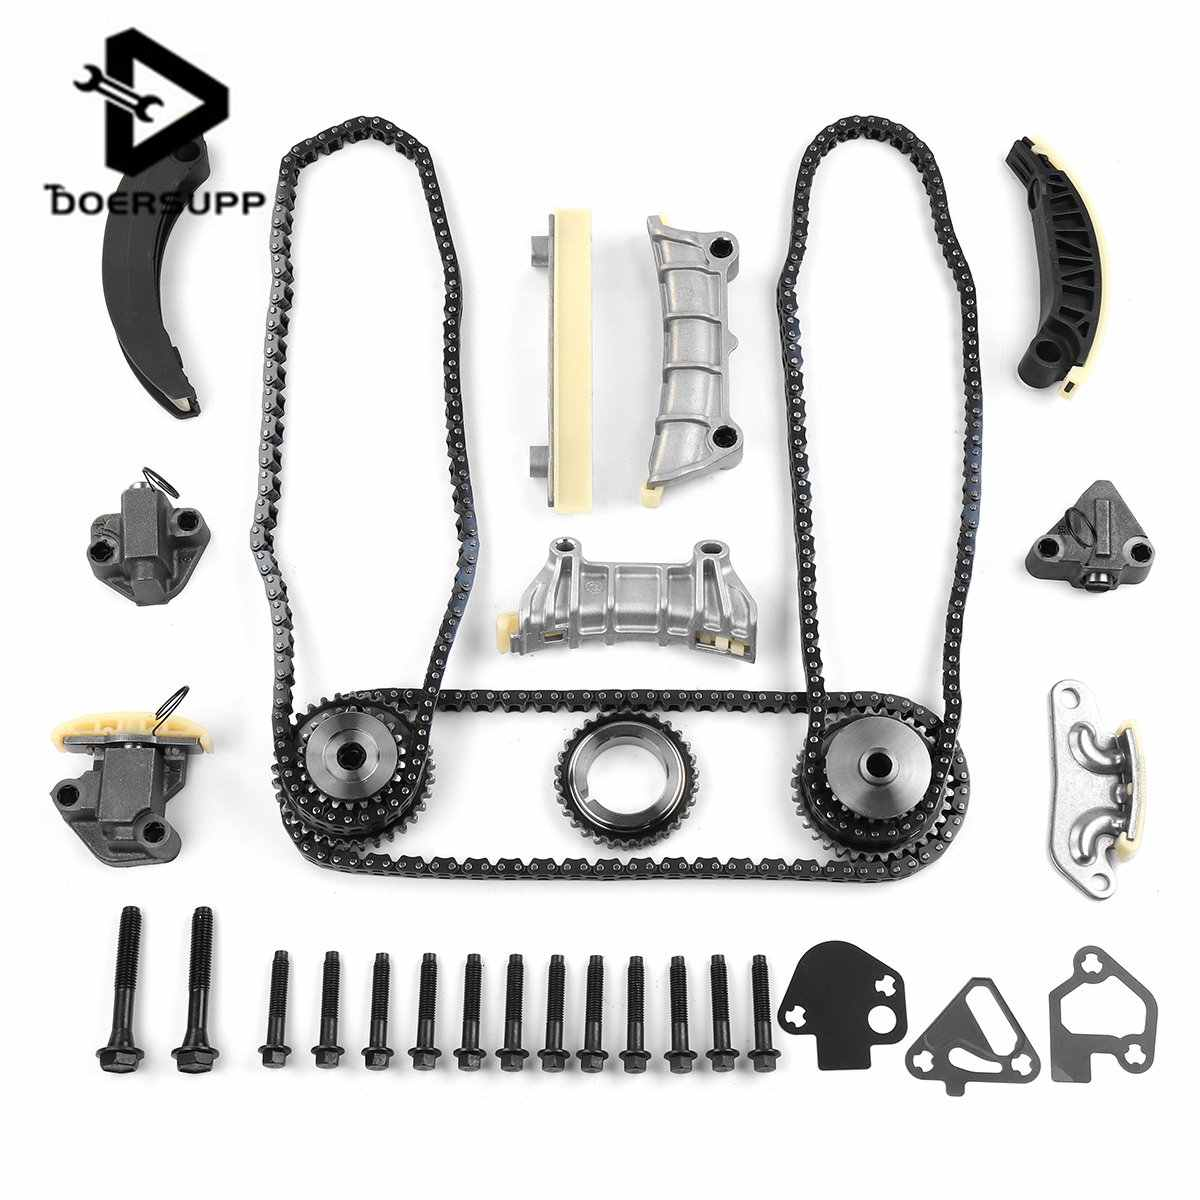 Timing Chain Kit For GM for Holden Commodore VZ VE Alloytec LY7 LLT 3 6L V6  w/Gears Automobiles Engines & Components